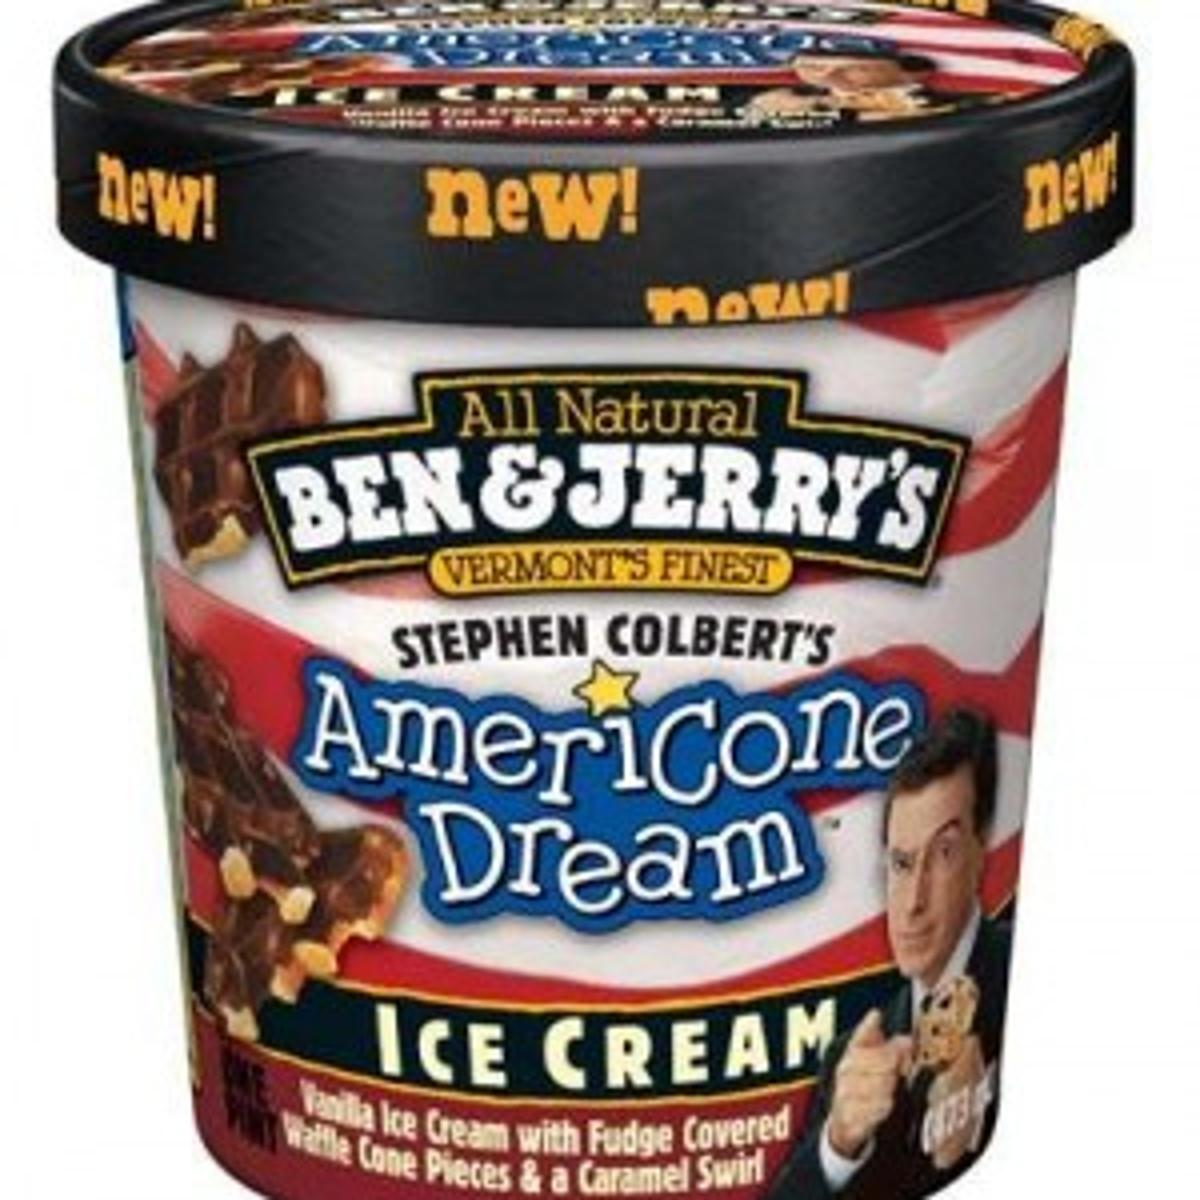 Ben Jerry S Names New Flavor For Stephen Colbert Games Journalstar Com Just because it had colbert's face on it, and i wouldn't care if i liked the ice cream flavor or not. flavor for stephen colbert